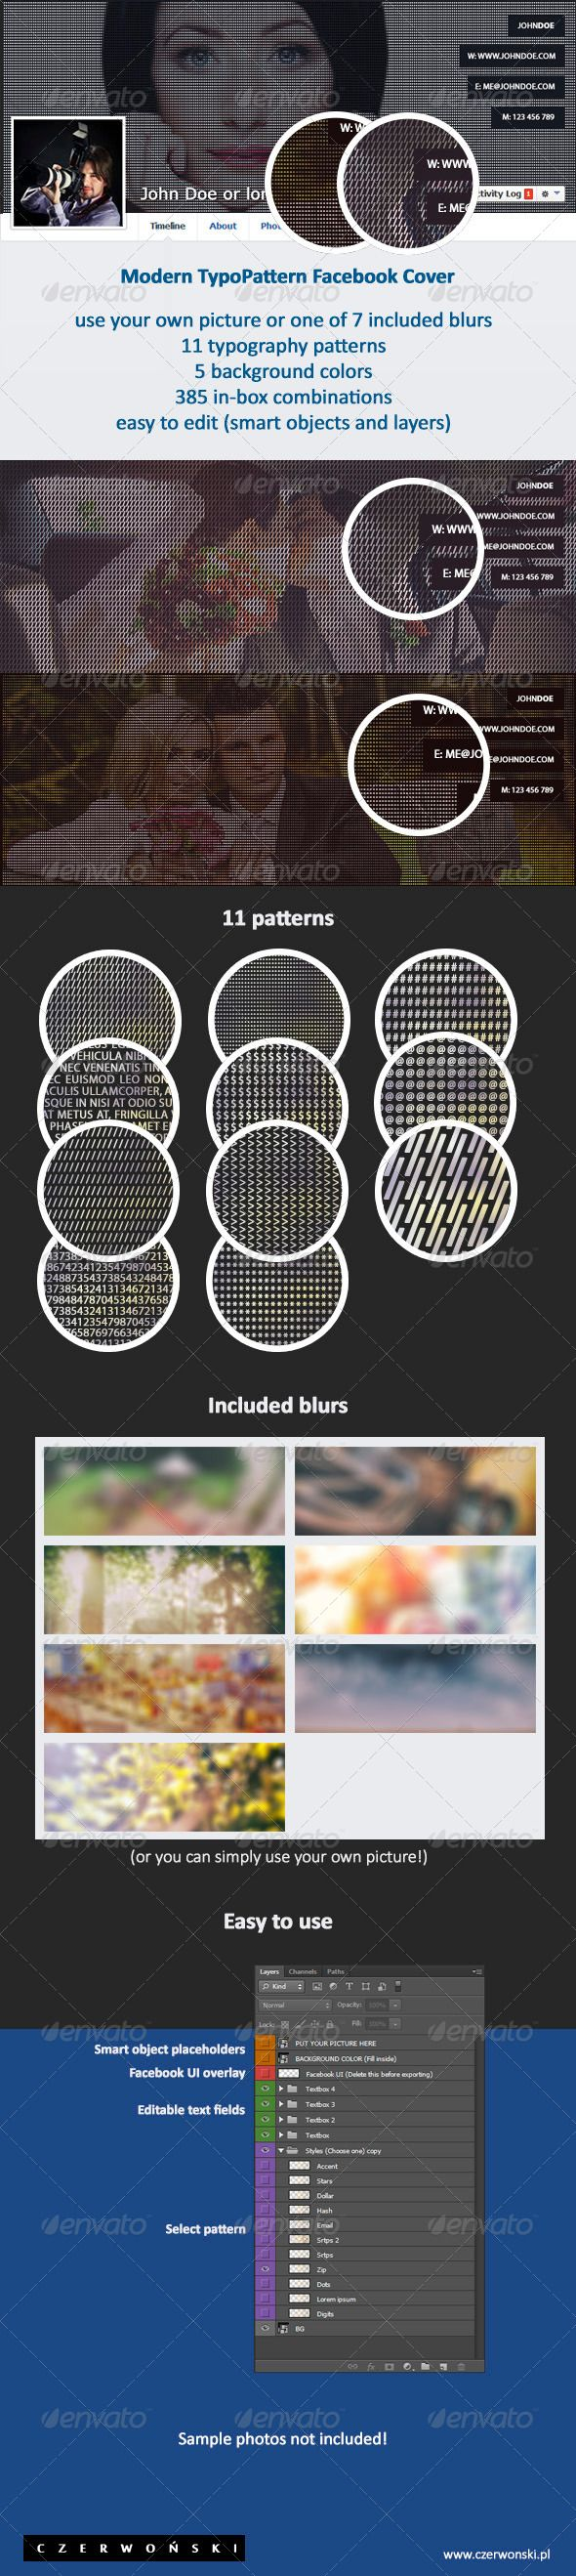 Modern TypoPattern Facebook Cover. Buy it on Graphicriver for just $3